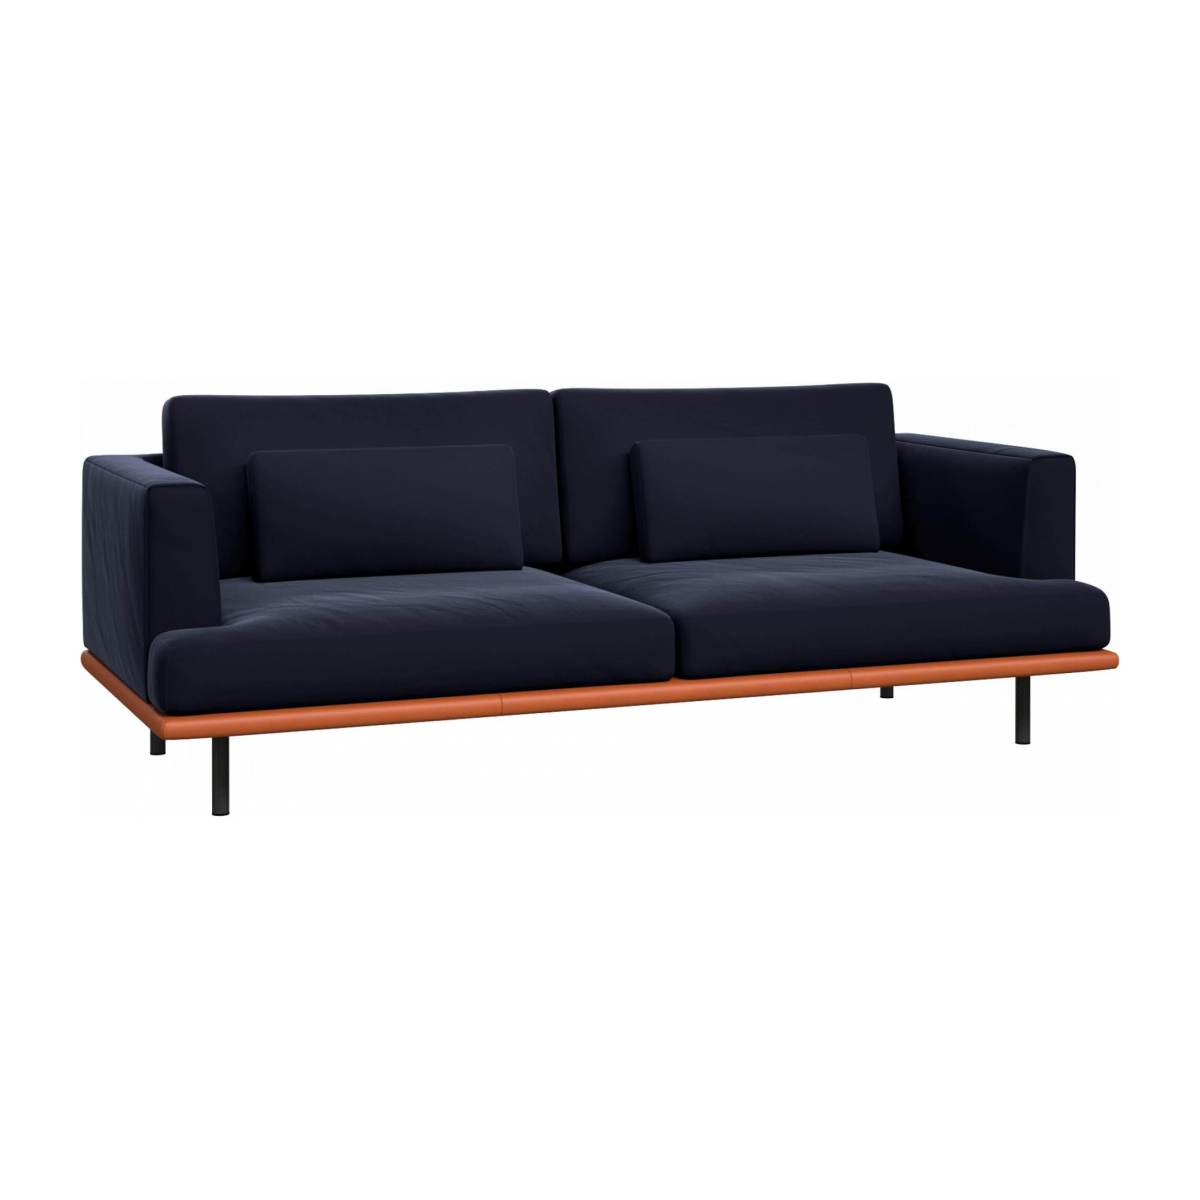 3 seater sofa in Super Velvet fabric, dark blue with base in brown leather n°2